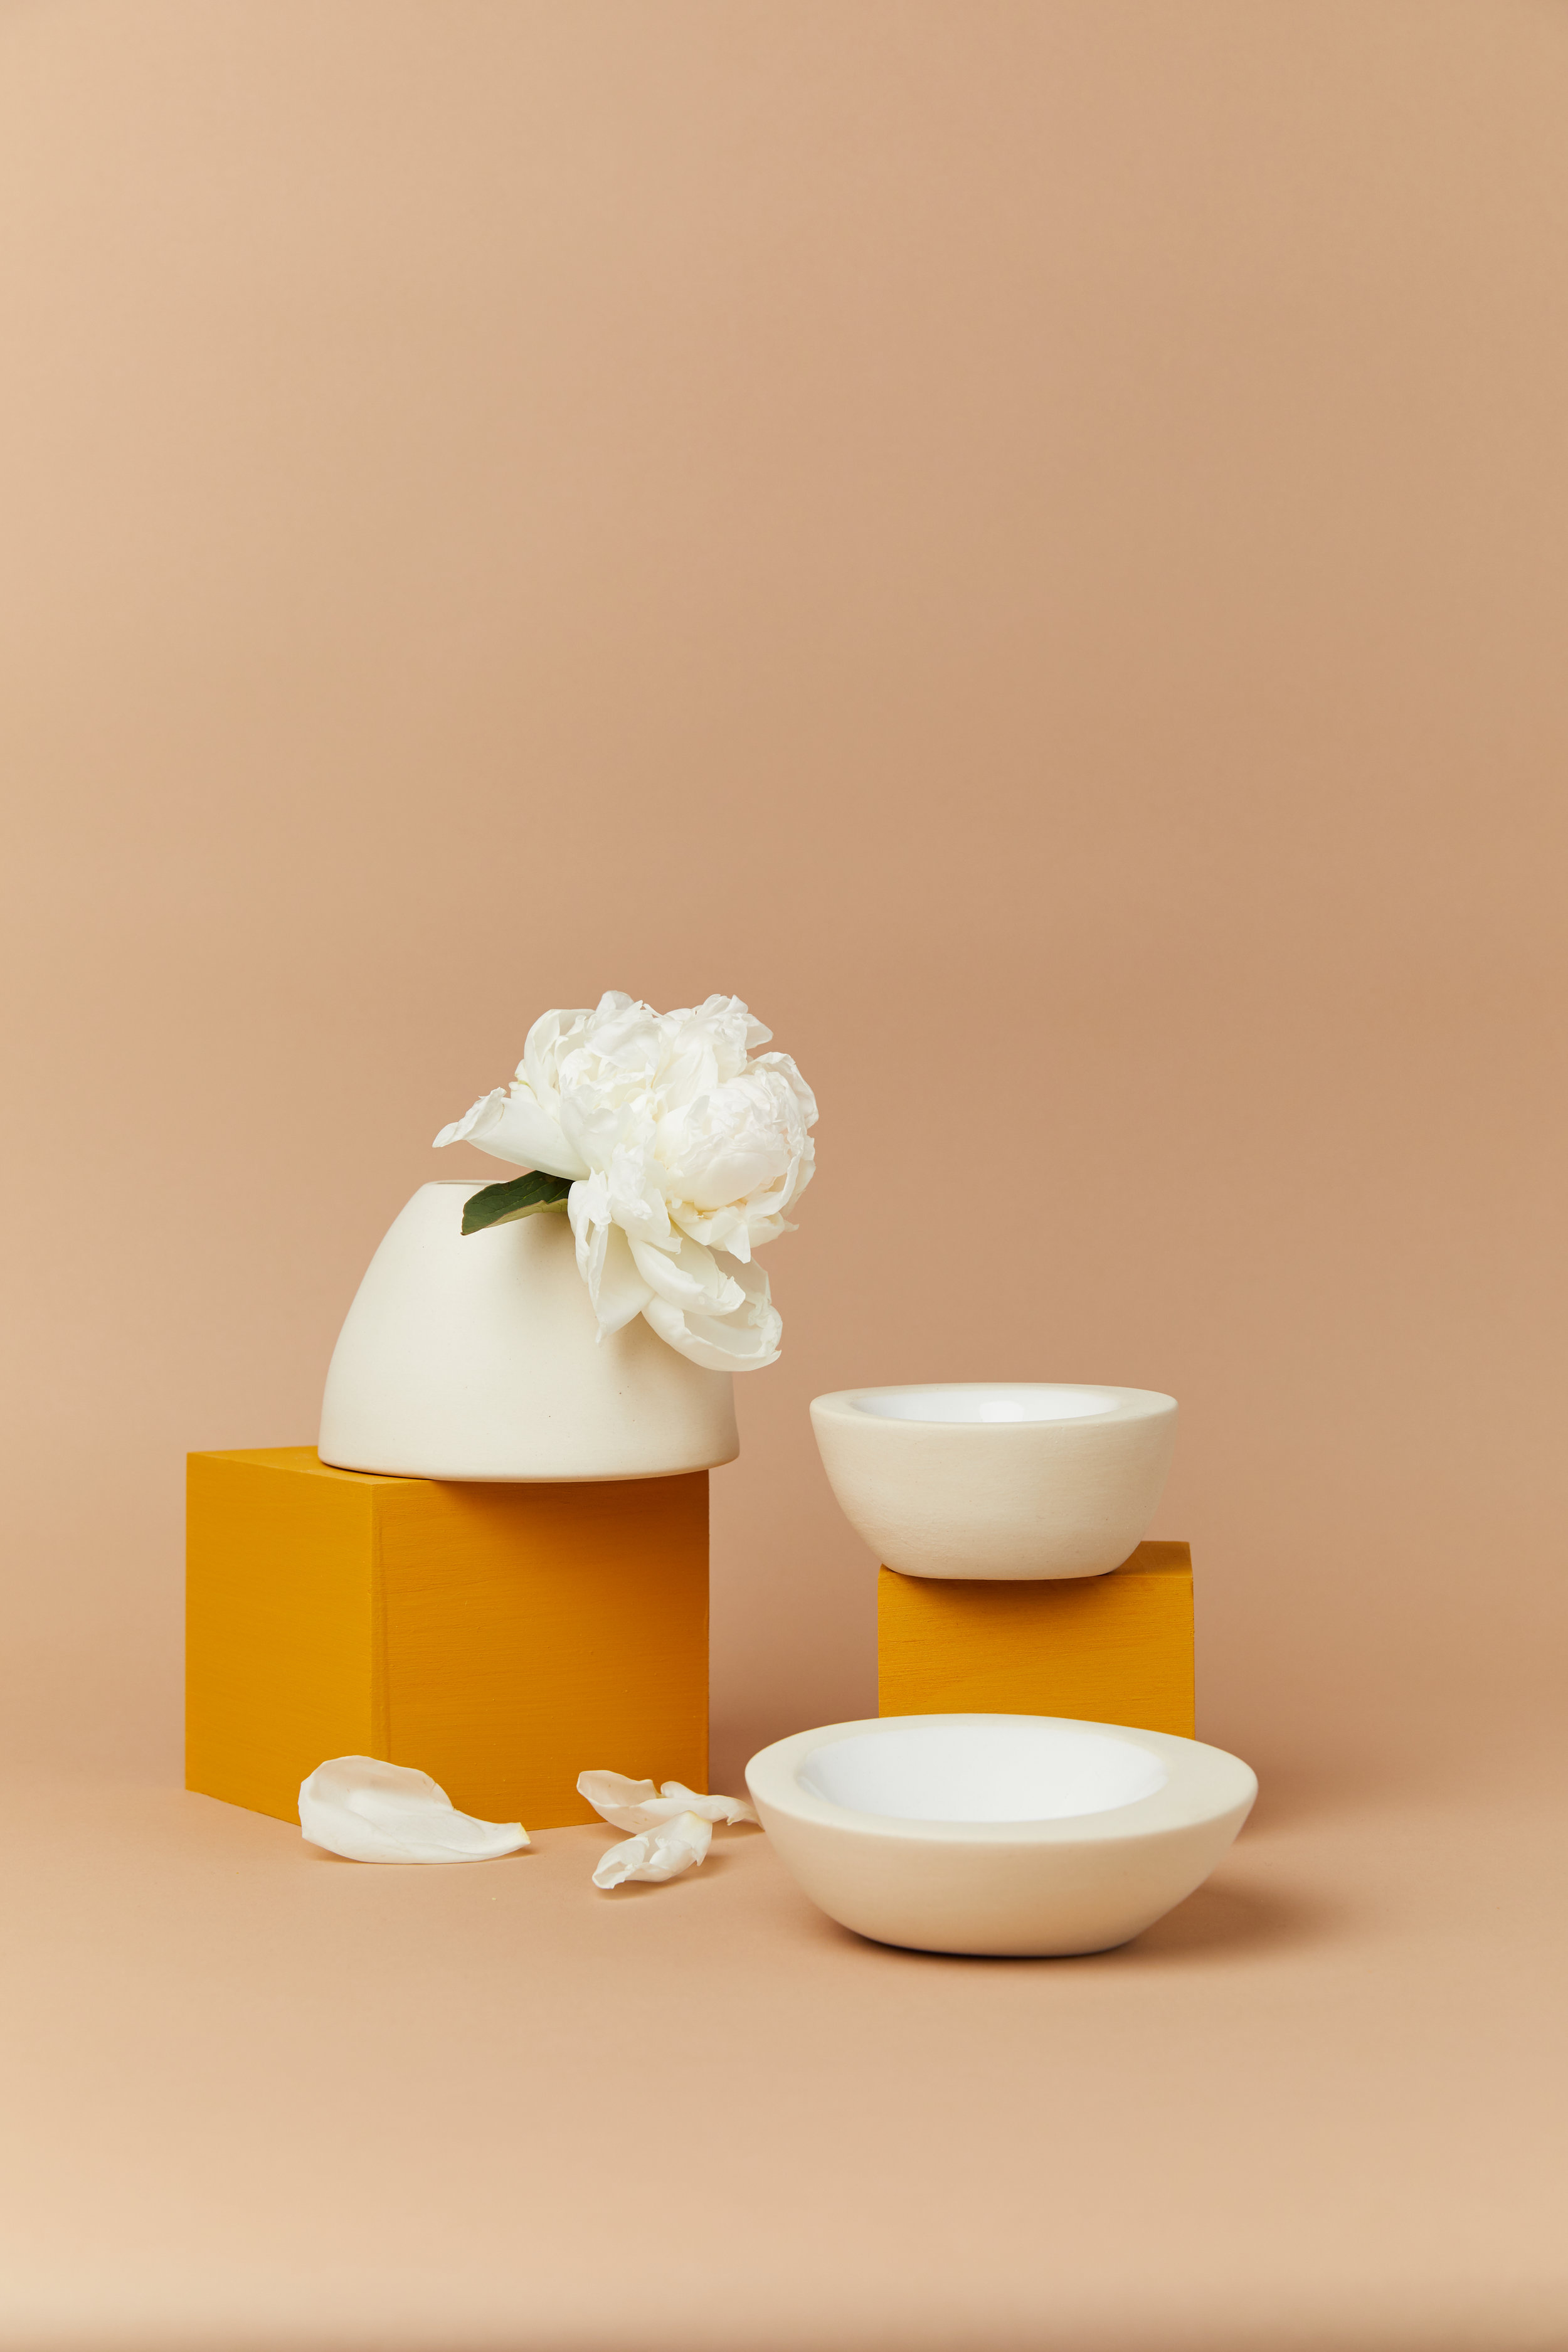 Double walled bowls by make.do.studio